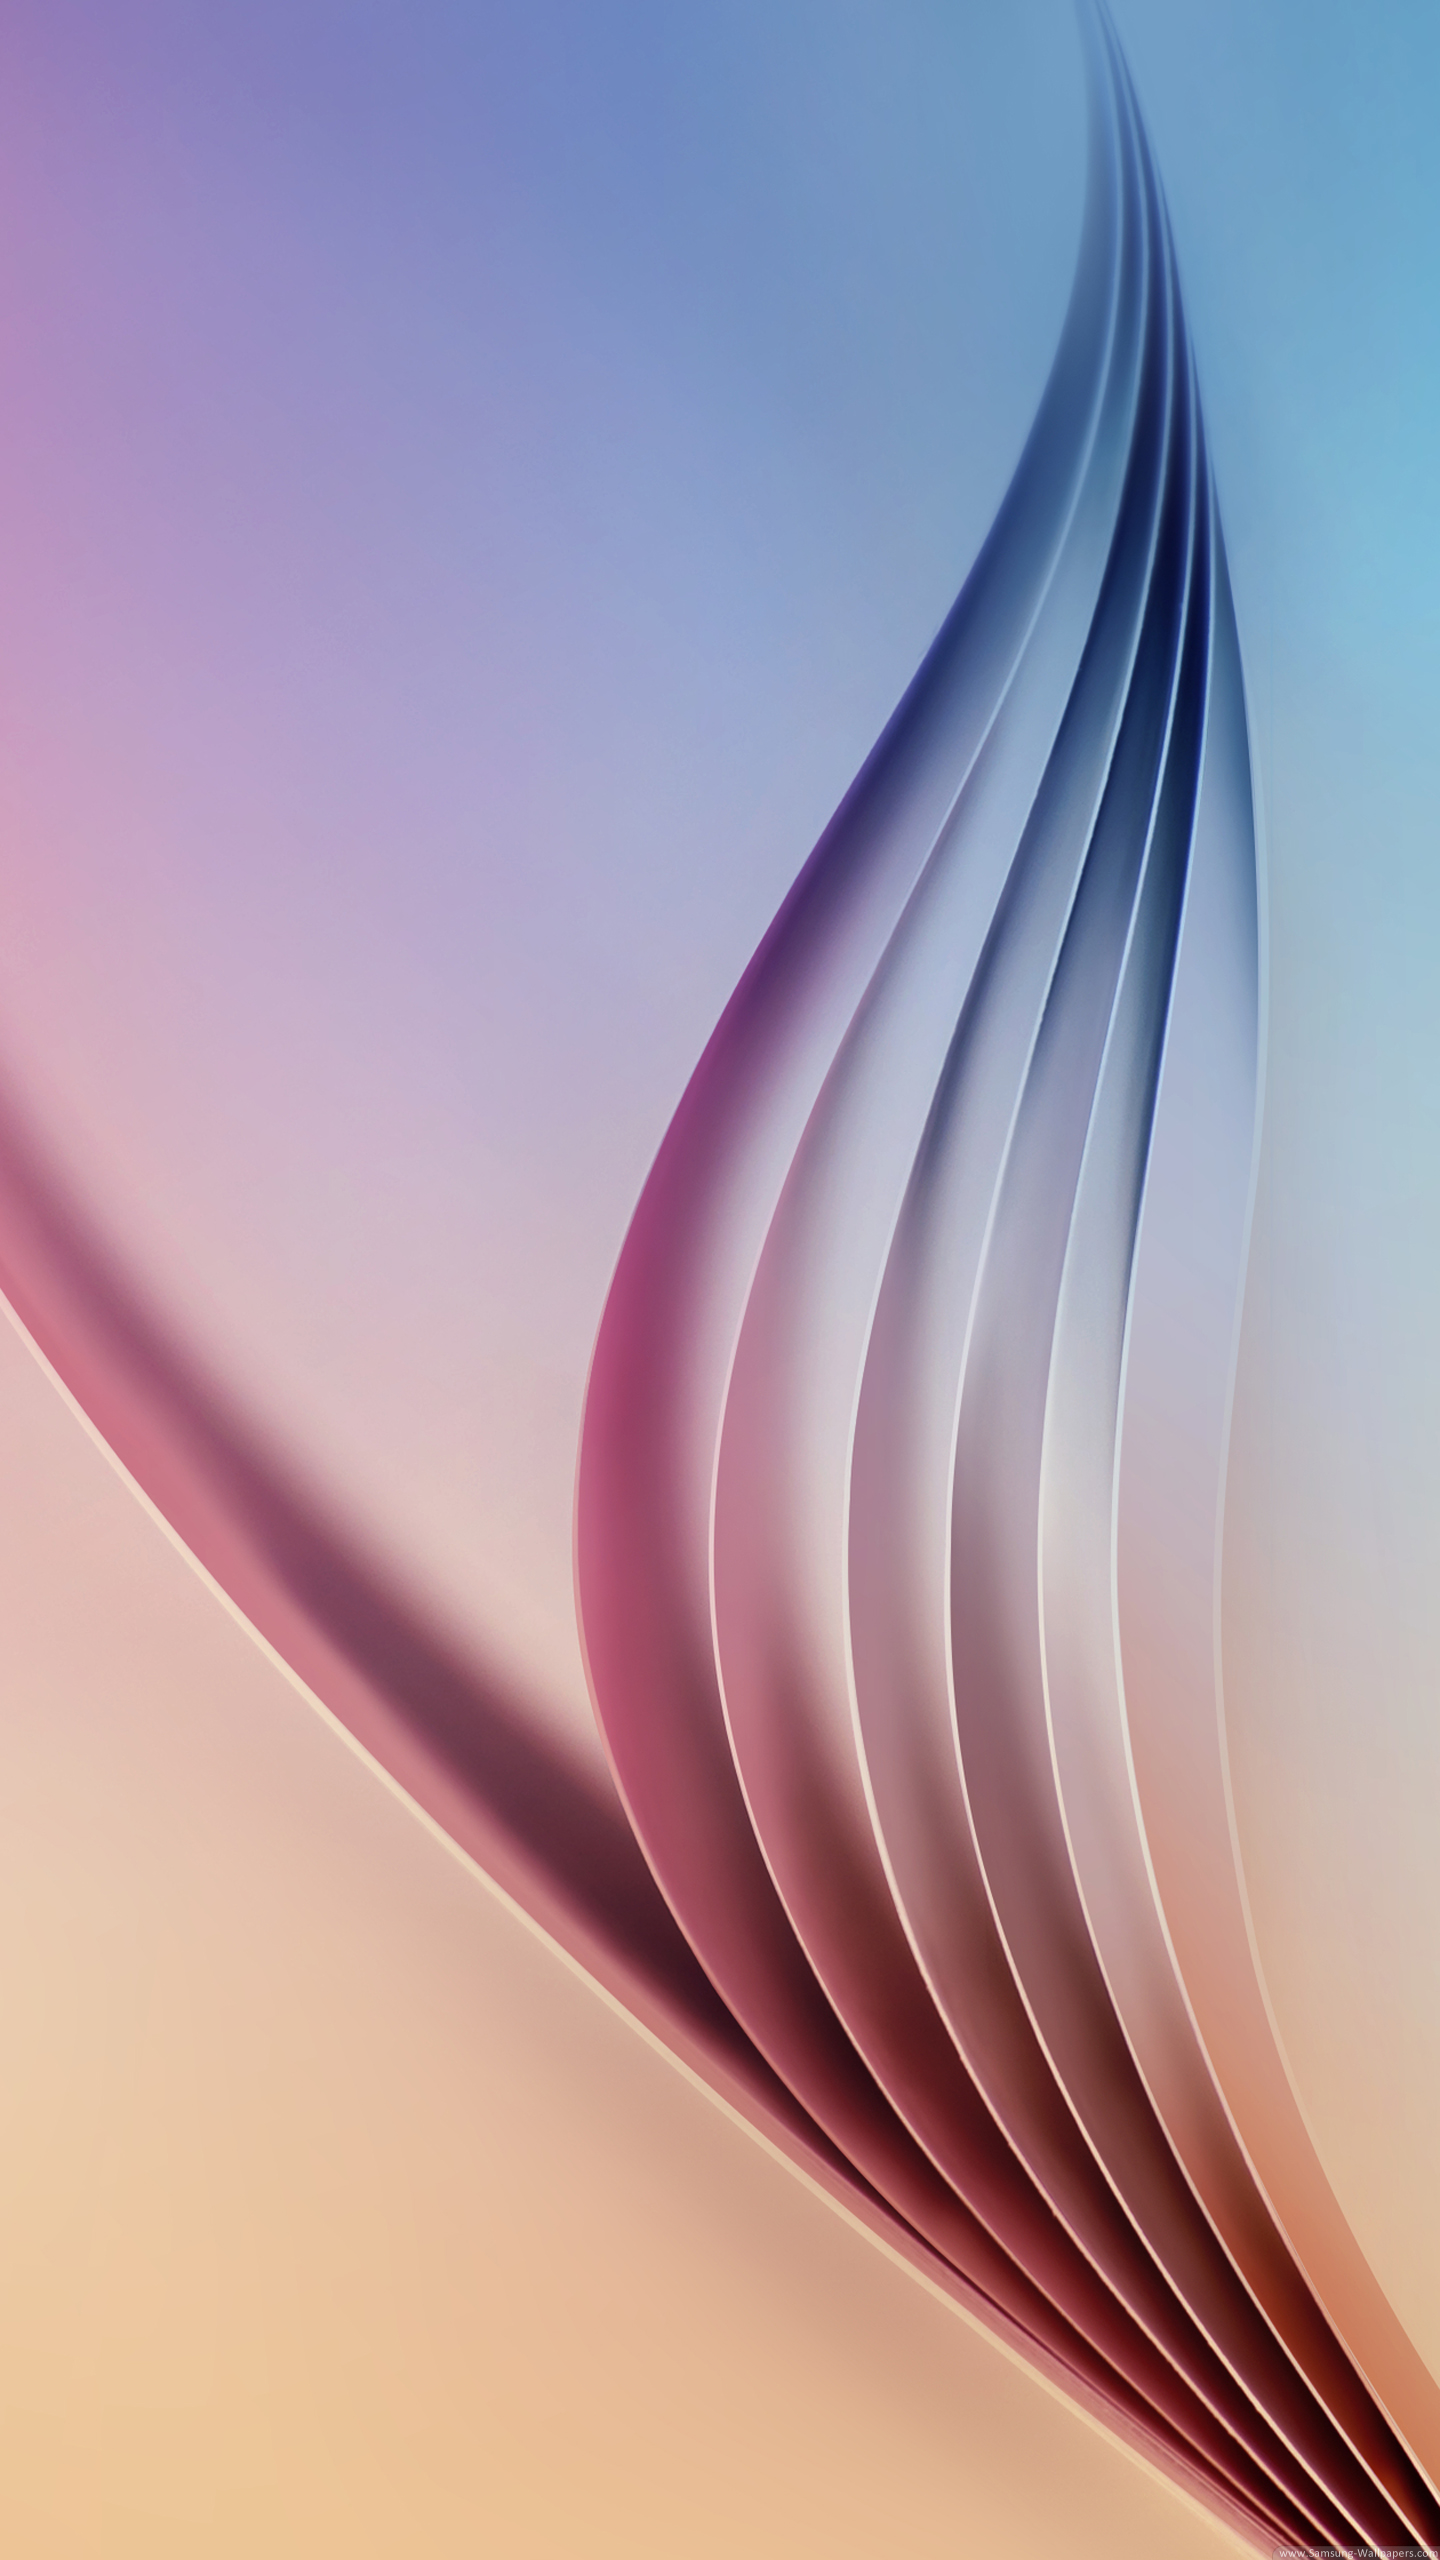 Download The Full Collection Of Wallpapers From The Galaxy S6 ...